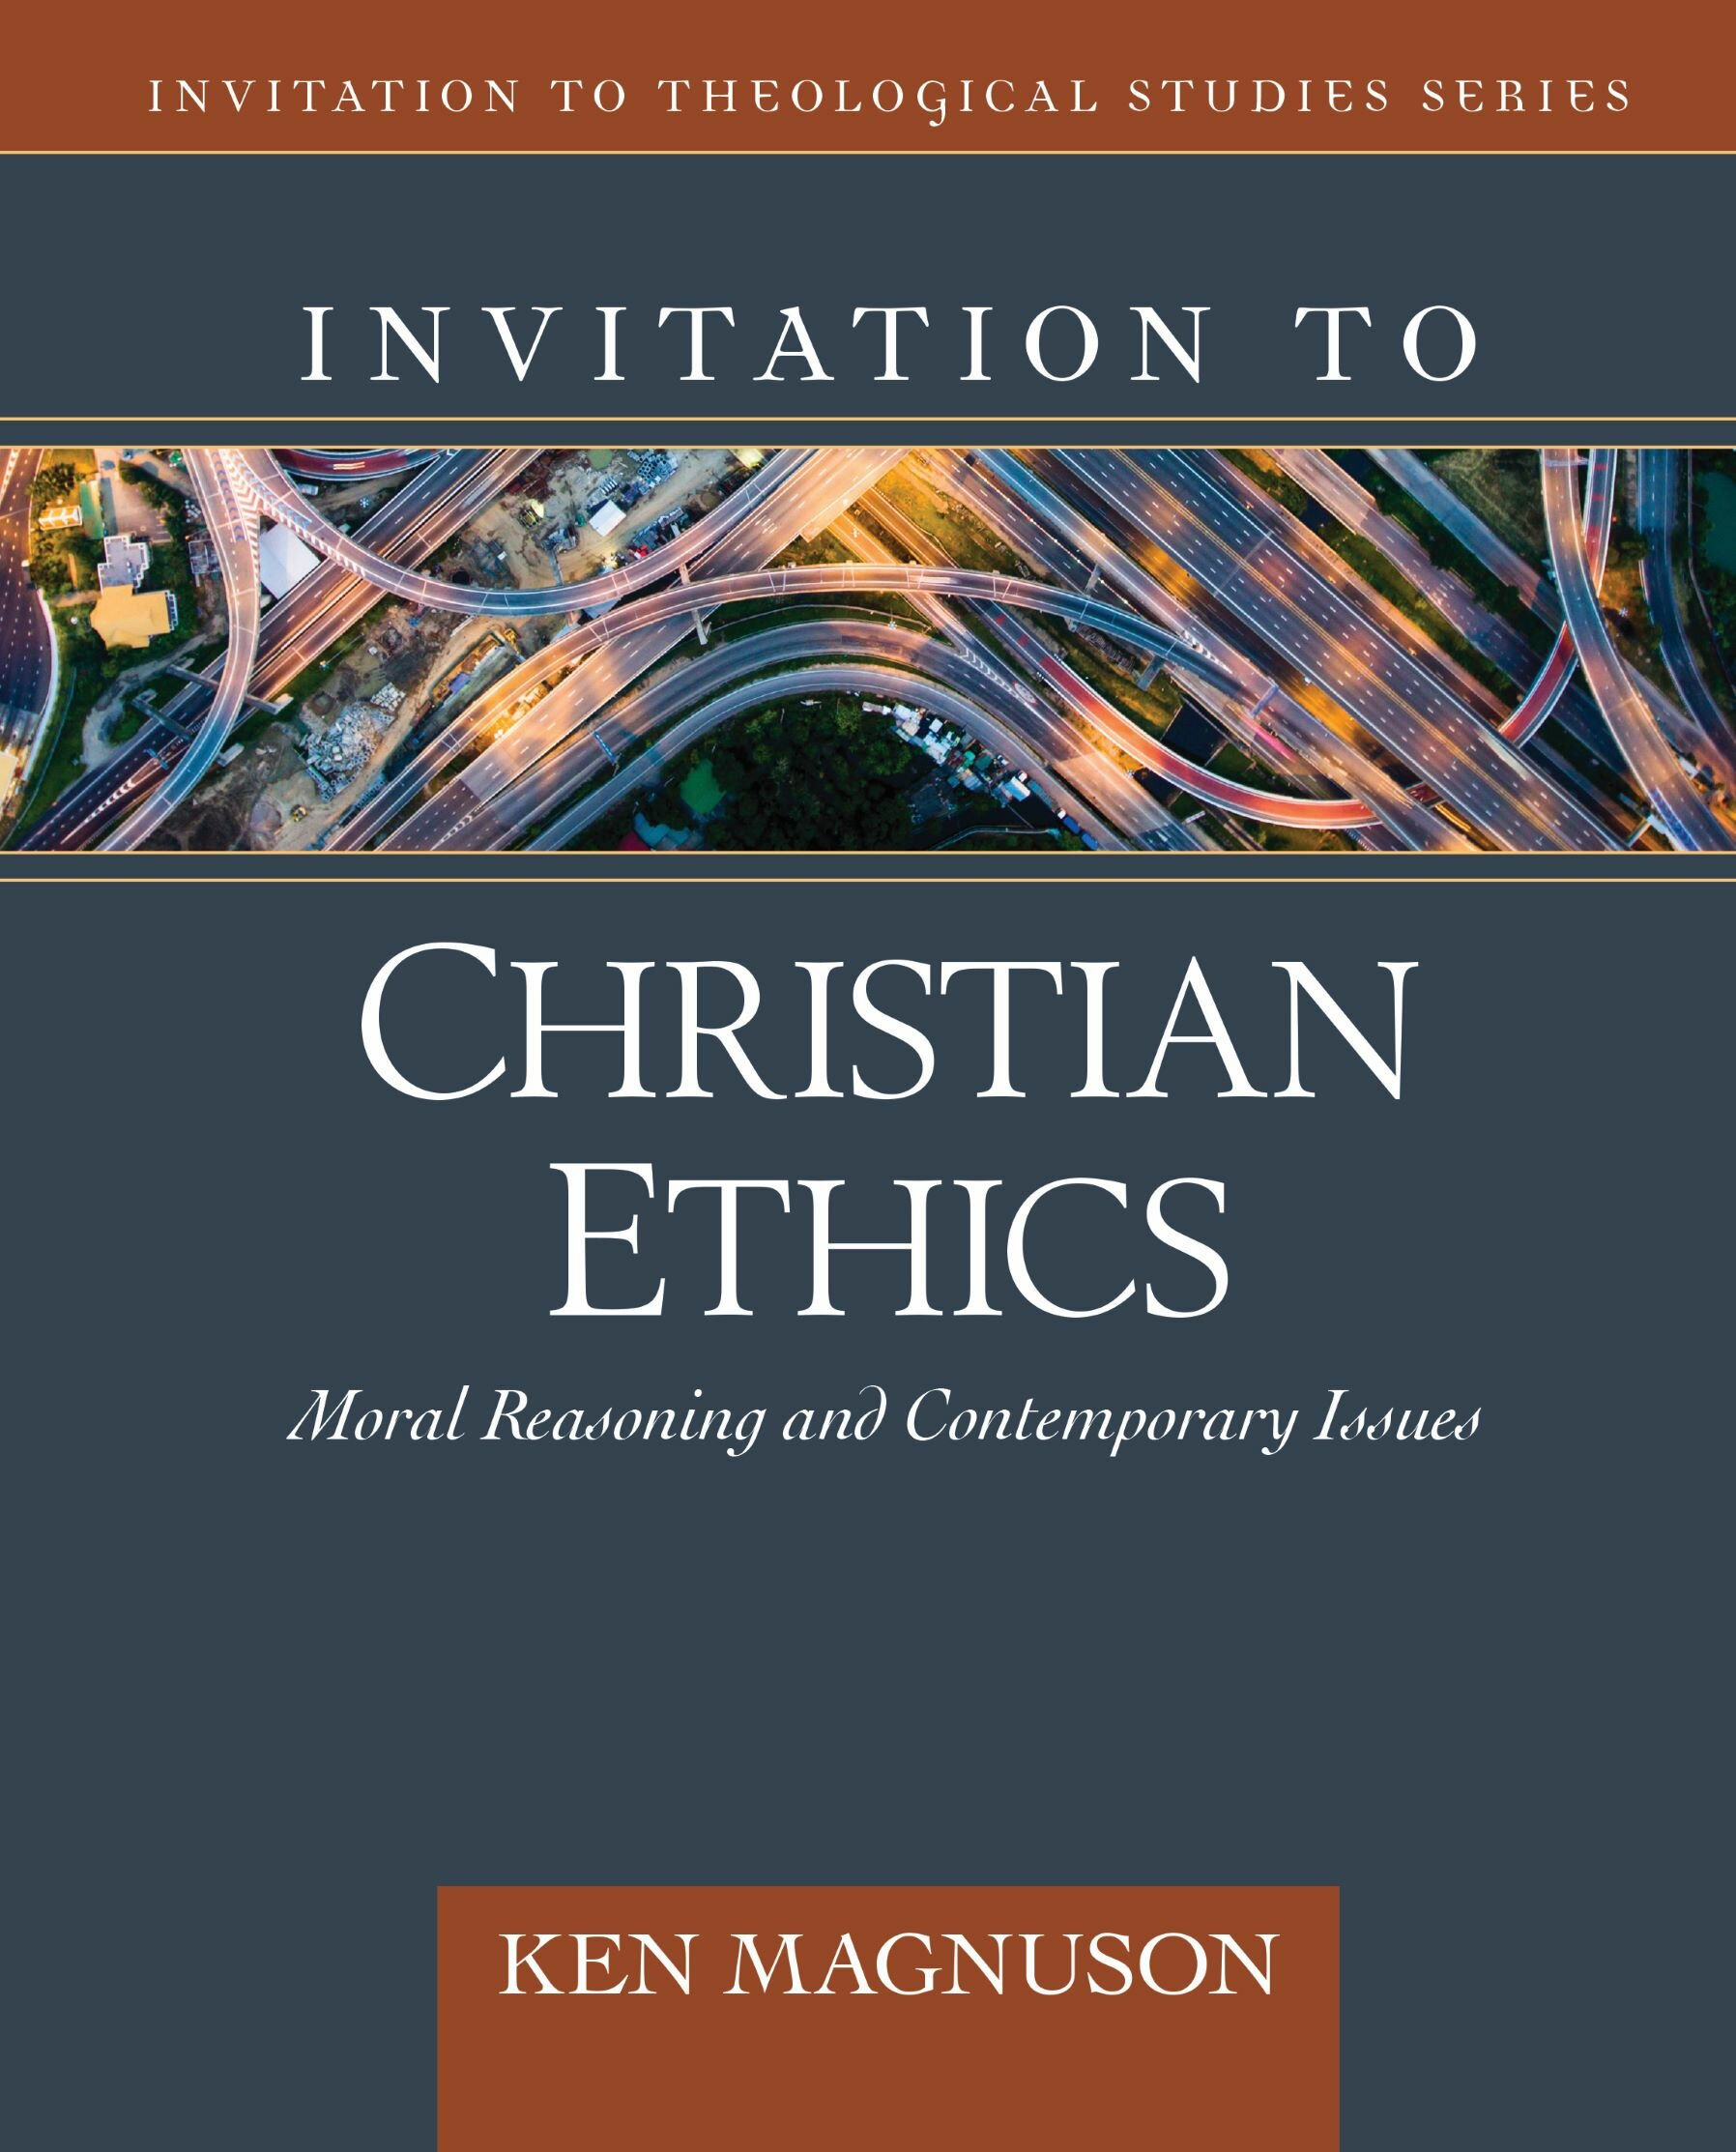 Invitation to Christian Ethics: Moral Reasoning and Contemporary Issues (Invitation to Theological Studies Series)